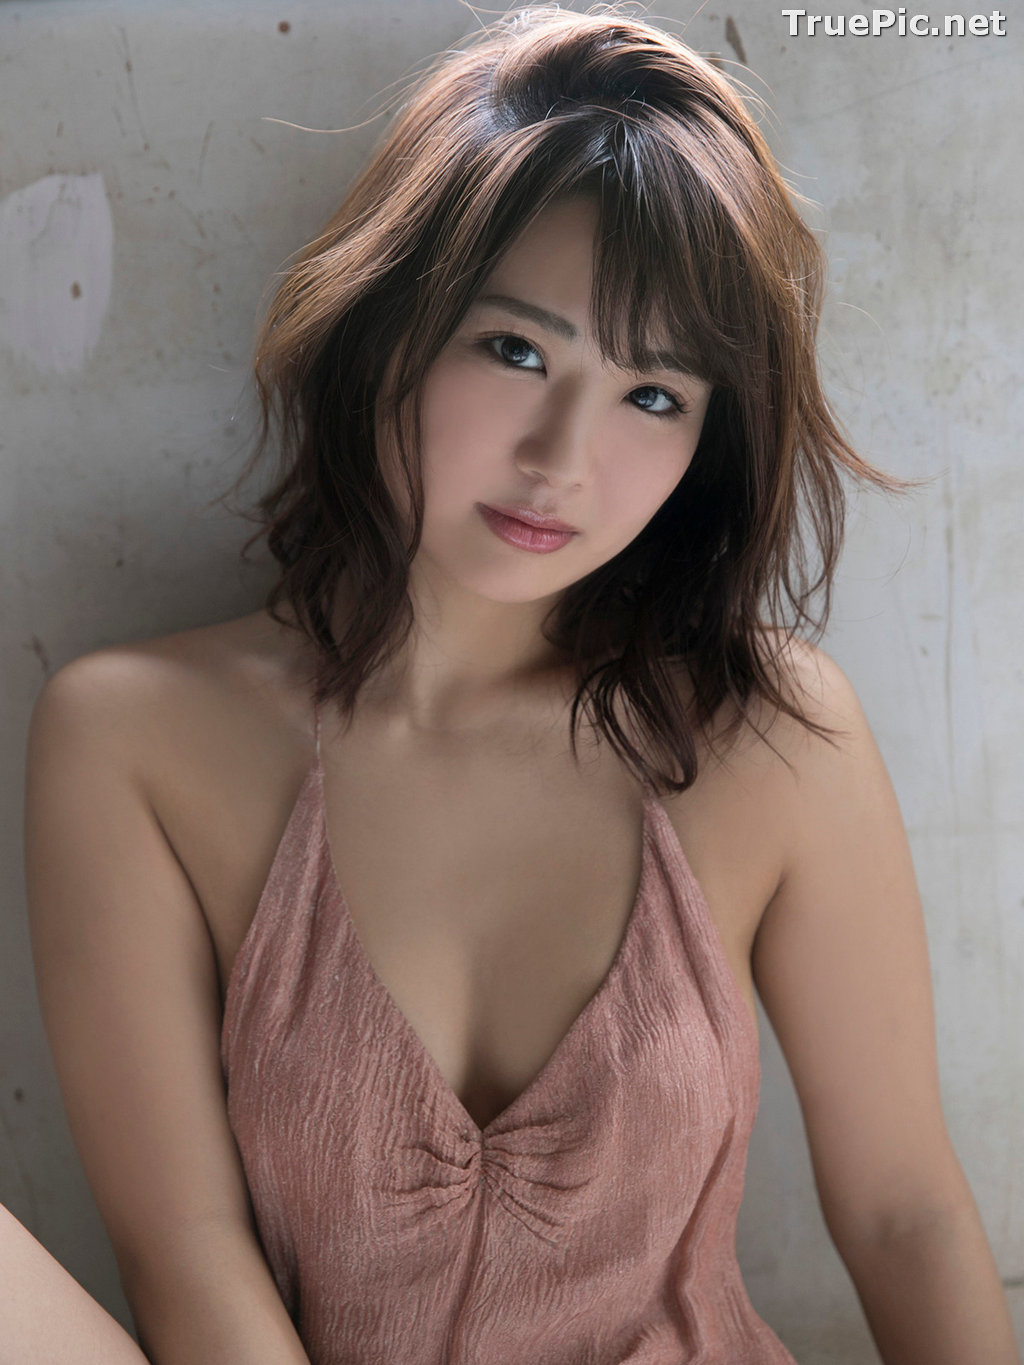 Image Japanese Actress And Model – Natsumi Hirajima (平嶋夏海) - Sexy Picture Collection 2021 - TruePic.net - Picture-4